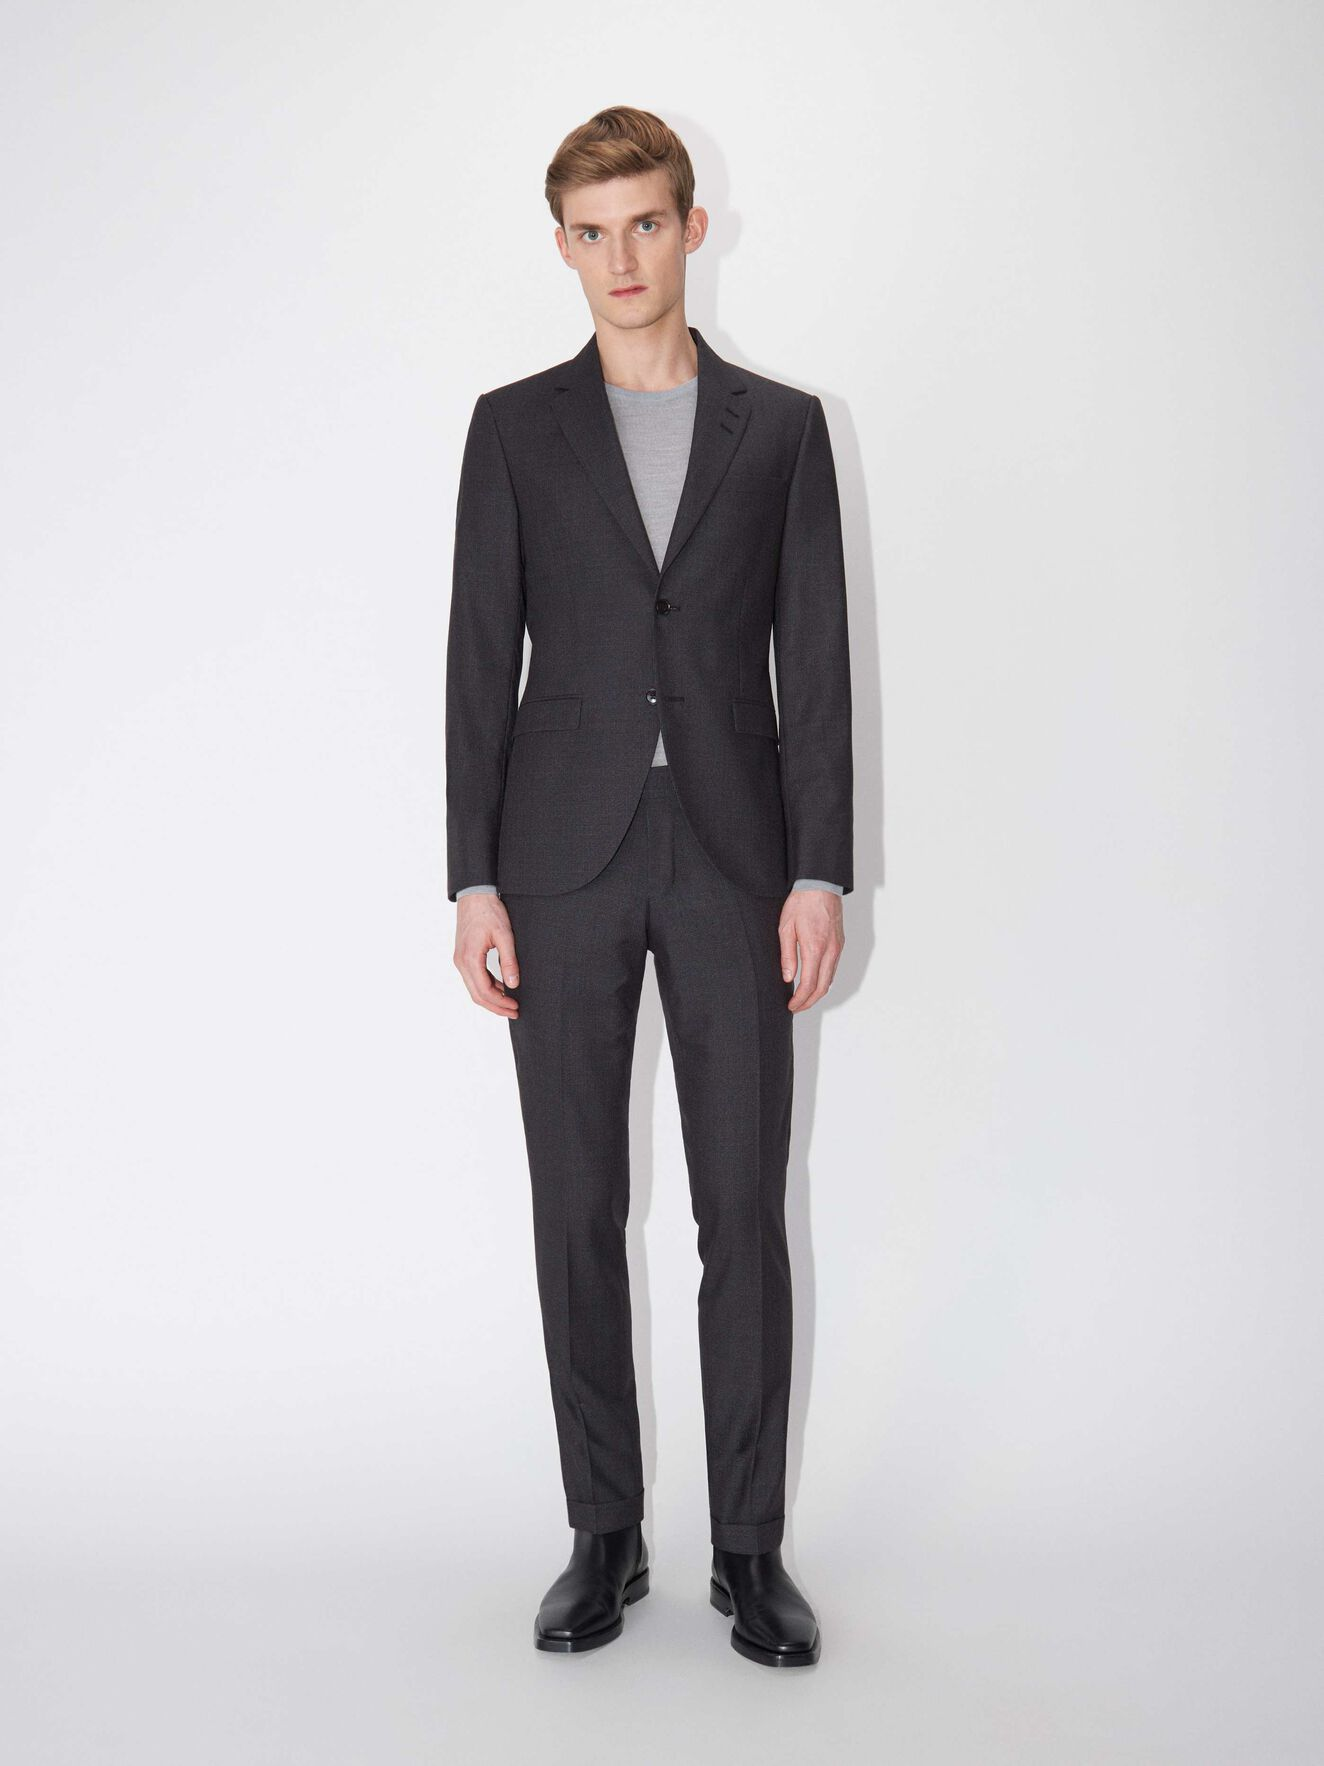 Tilman Trousers in Black from Tiger of Sweden